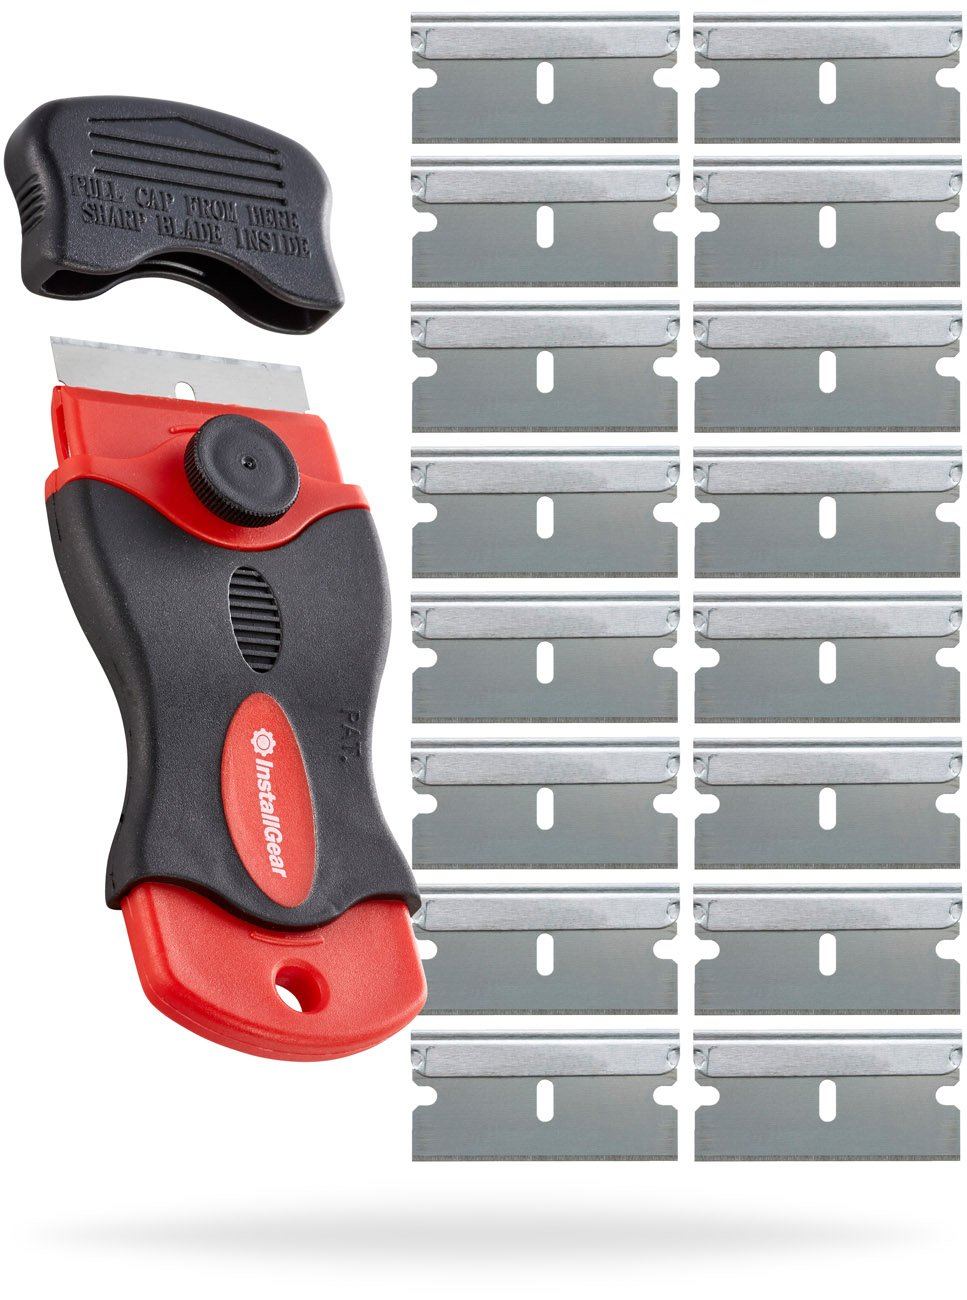 InstallGear Mini Razor Scraper with 16 Blades